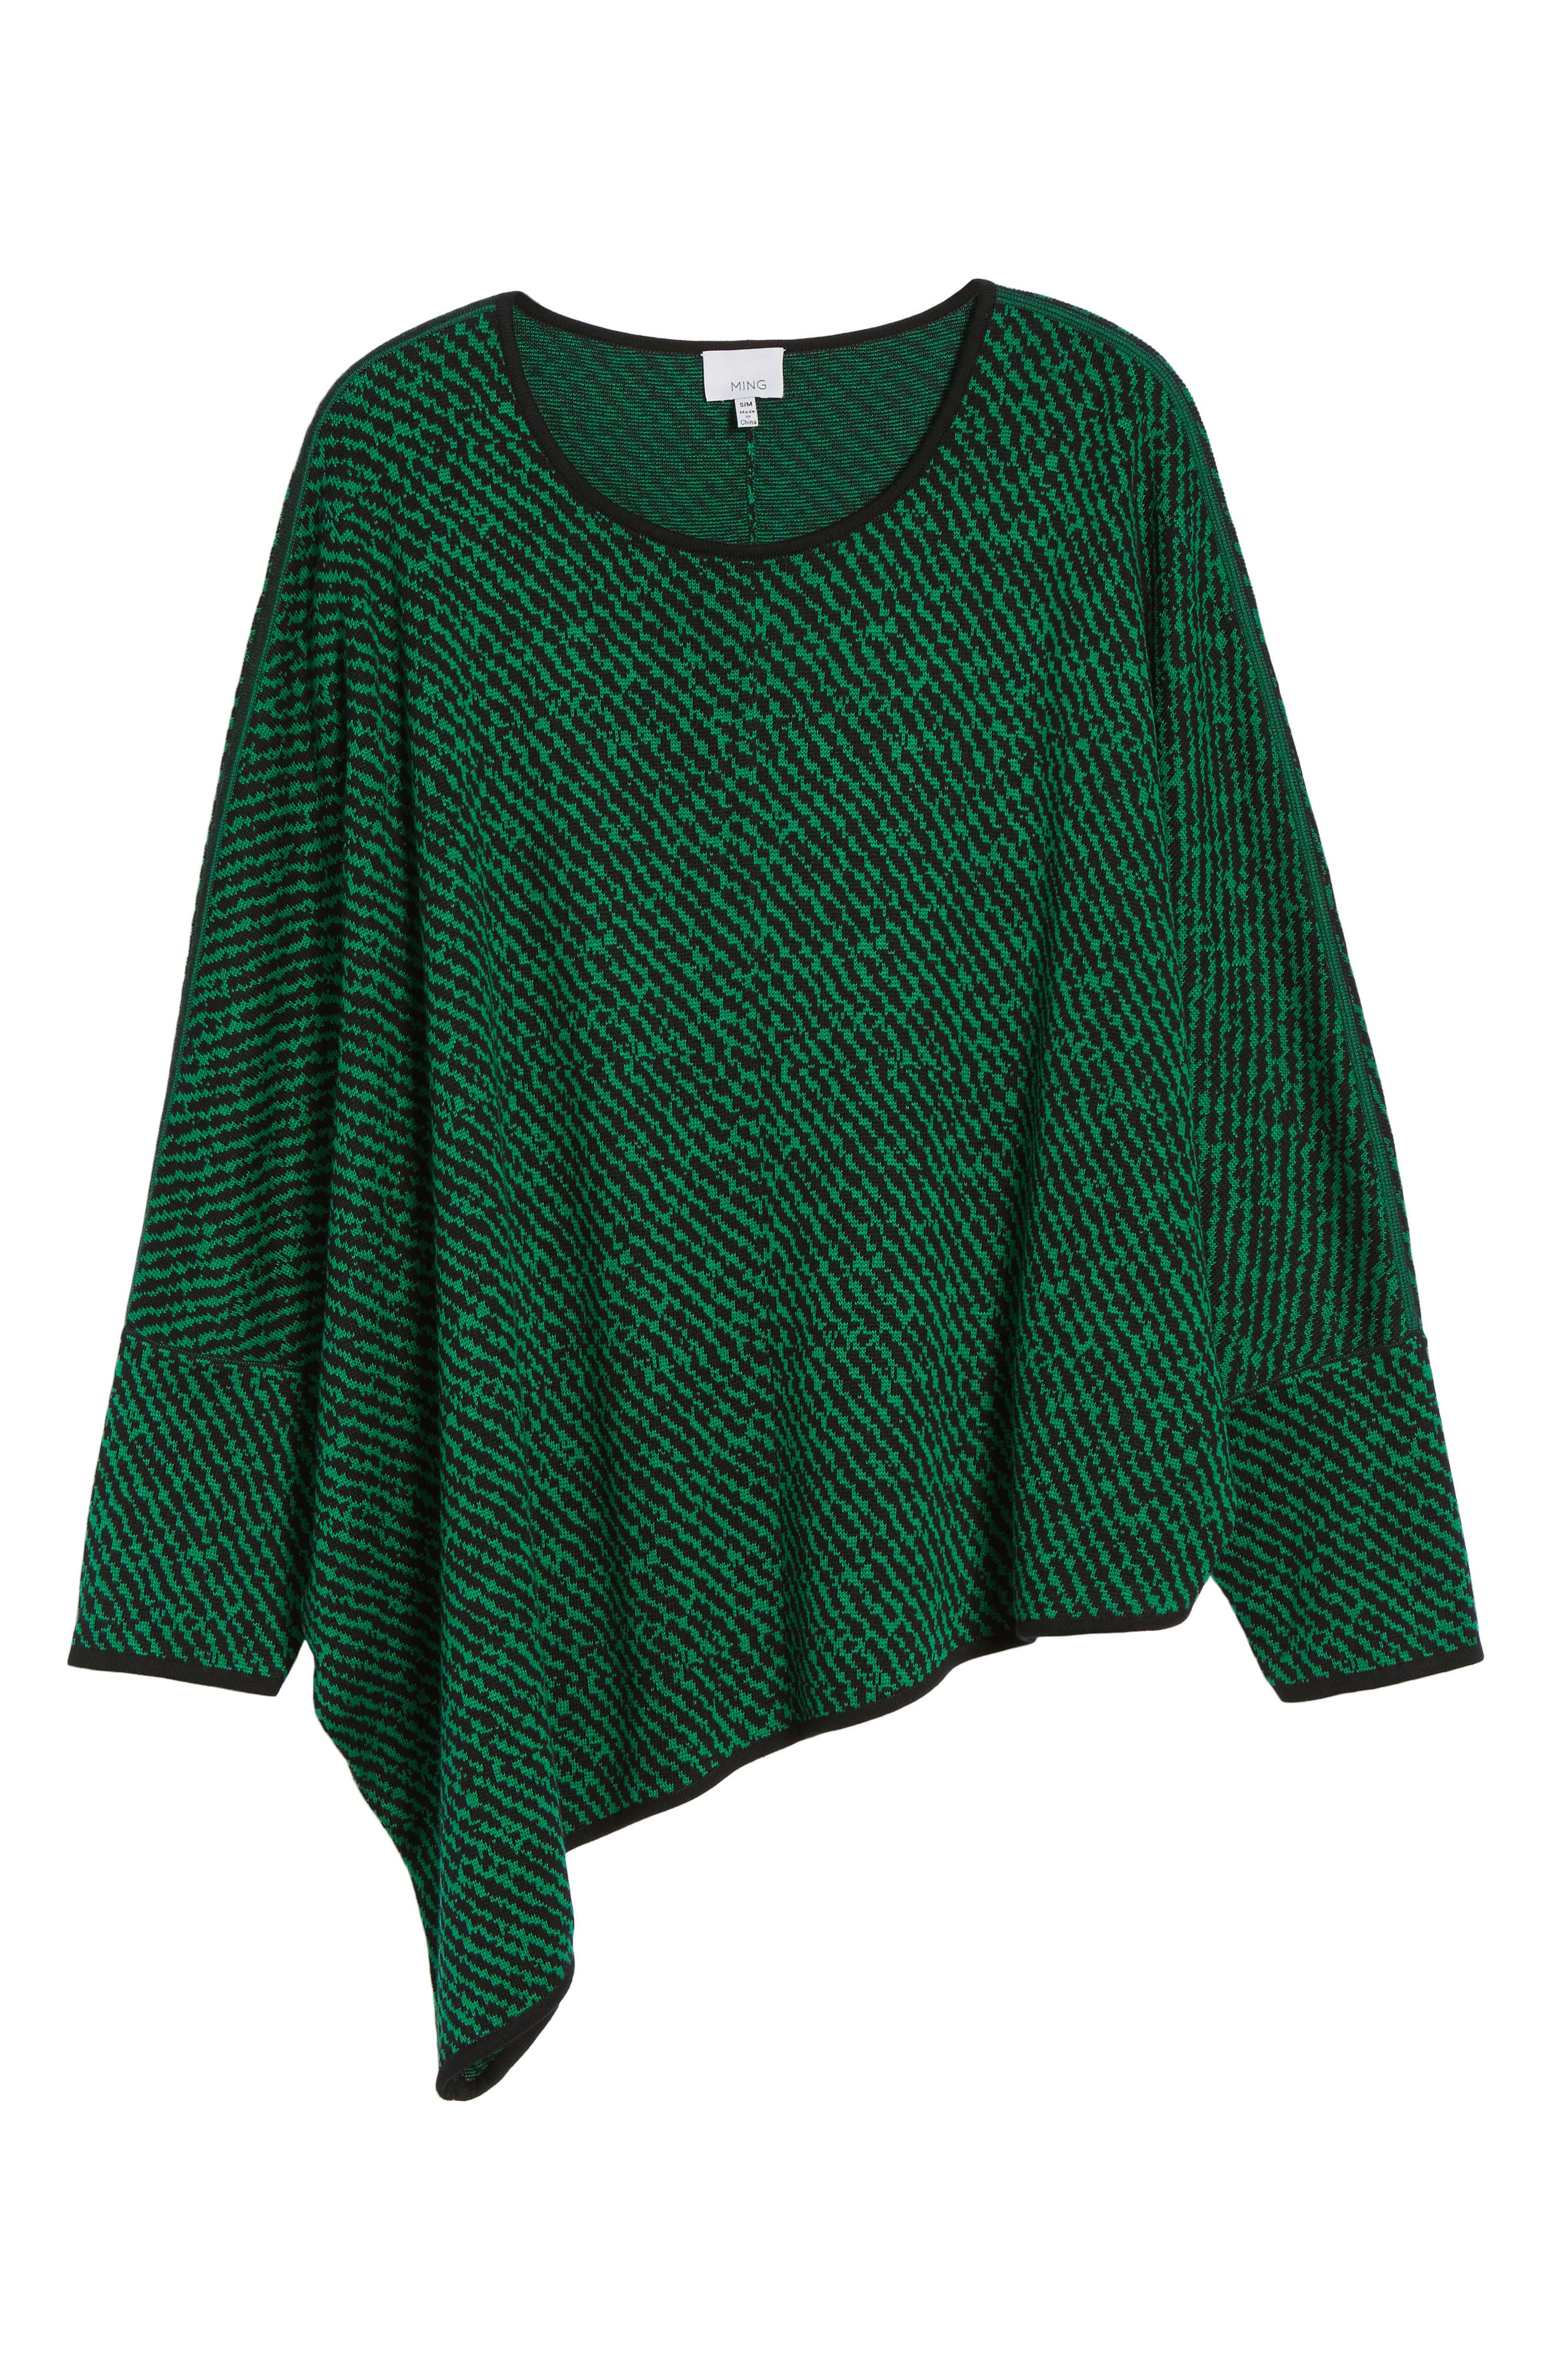 Asymmetrical Sweater,                             Alternate thumbnail 6, color,                             319